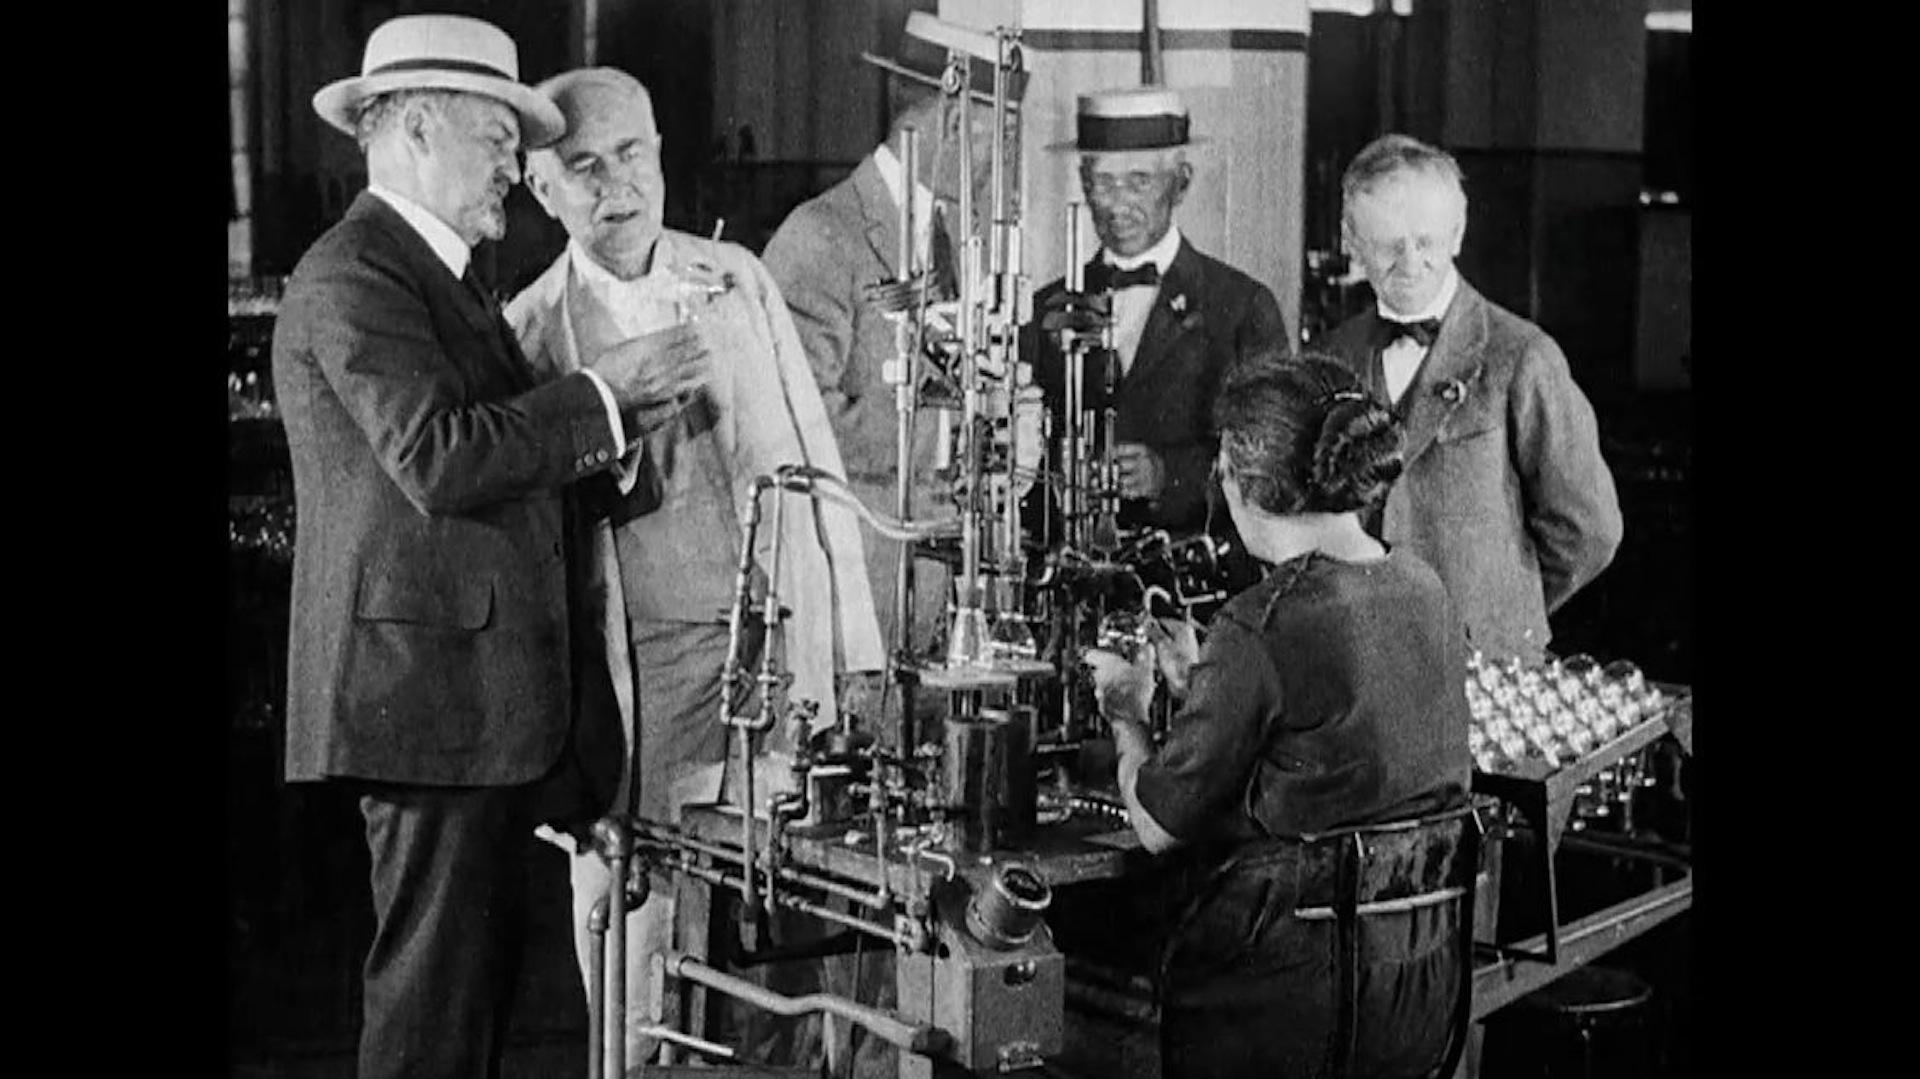 Edison american experience twin cities pbs for The edison